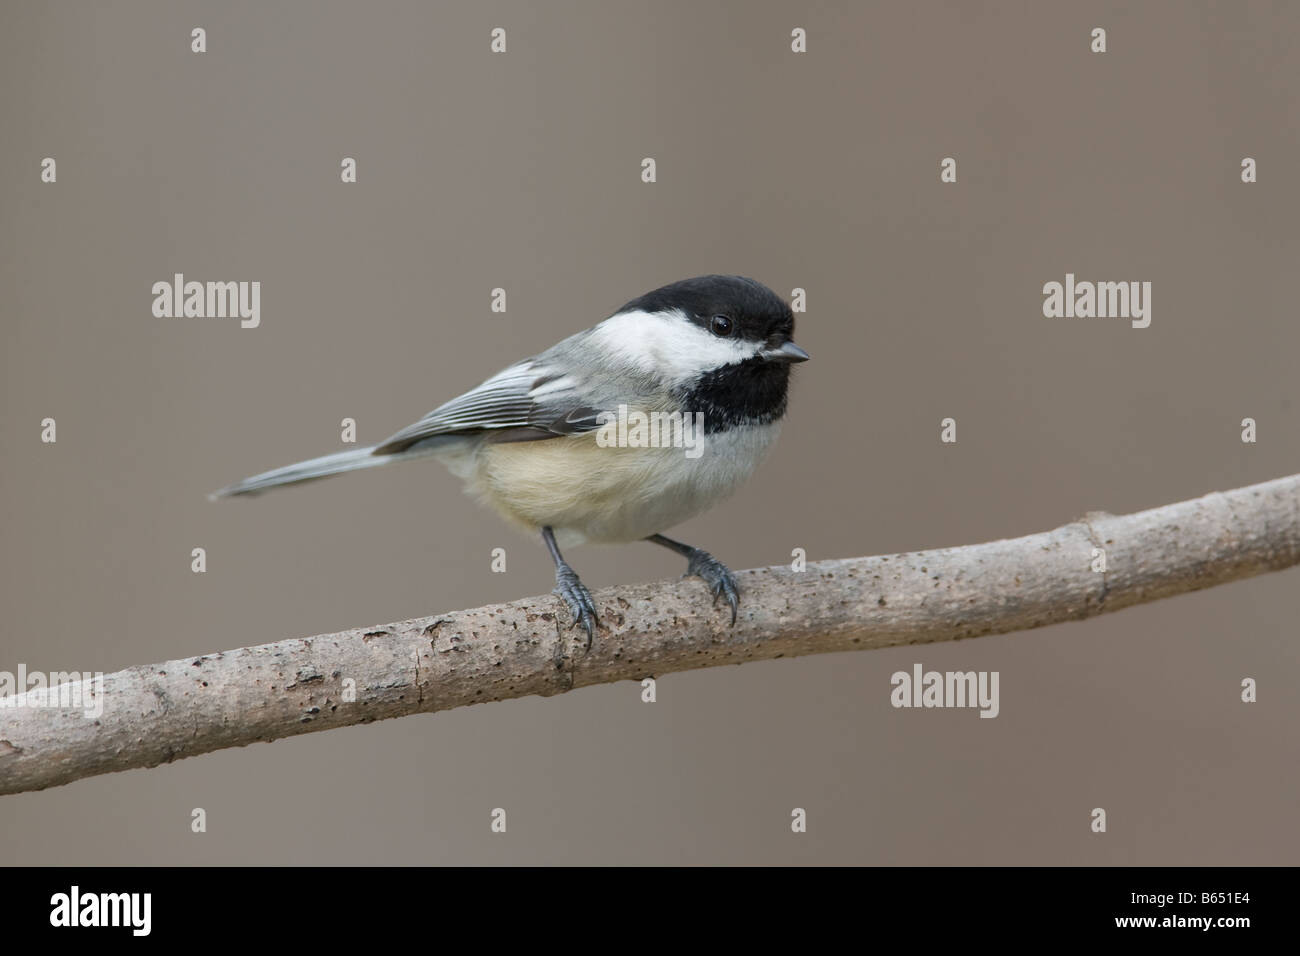 Black-capped Chickadee (Poecile atricapillus) perched on a tree limb - Stock Image